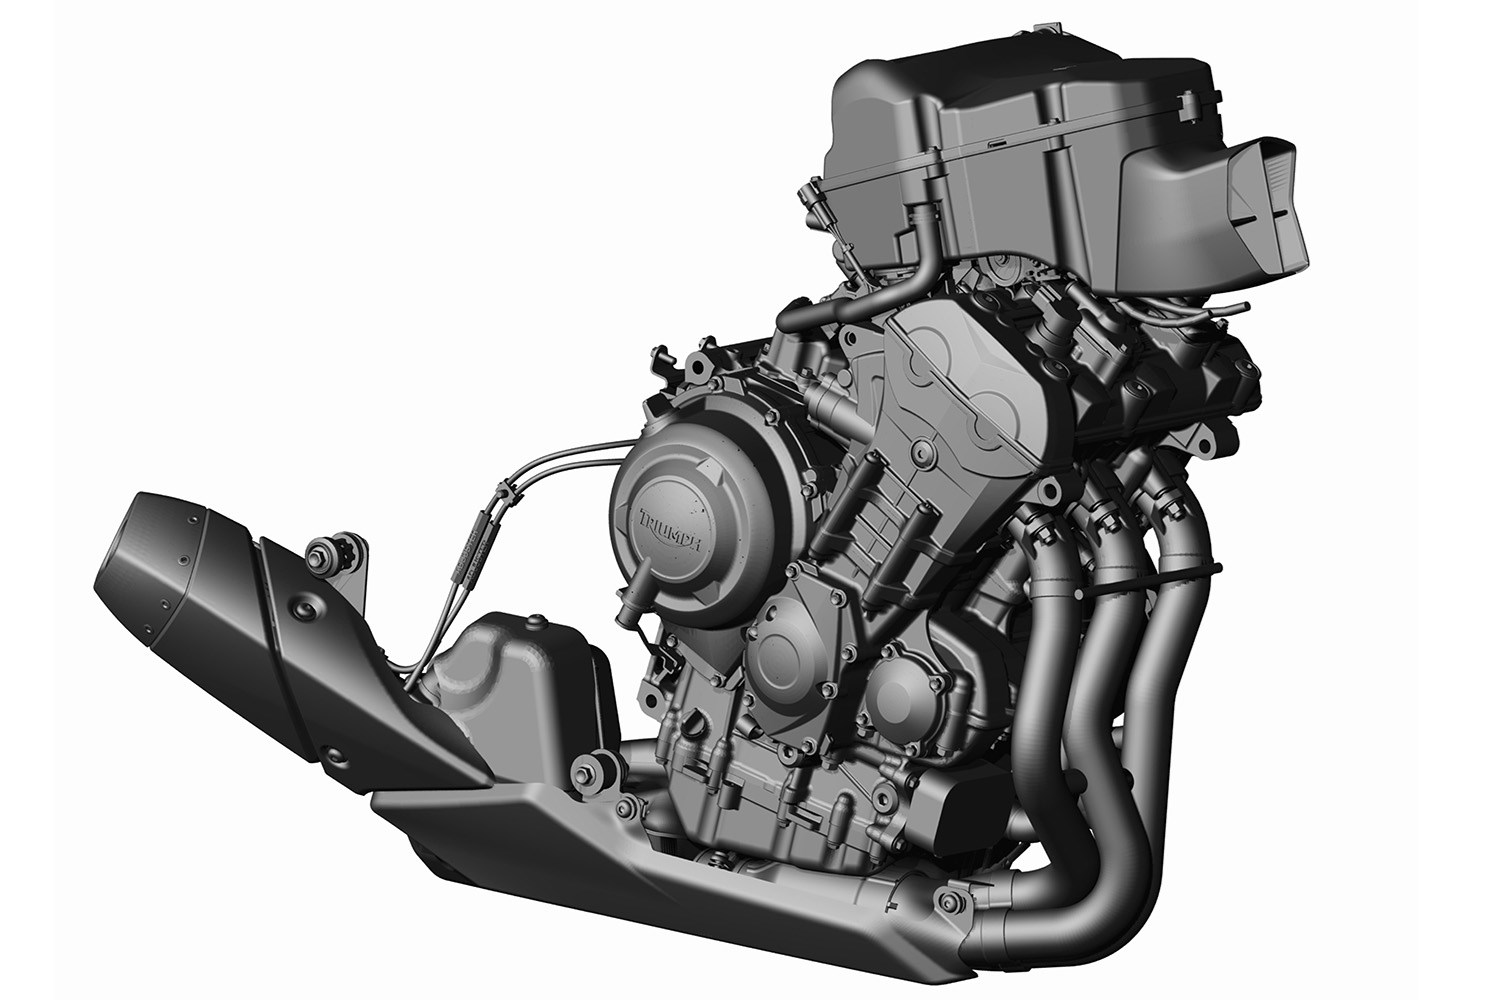 Triumph 765 moto2 engines.jpg